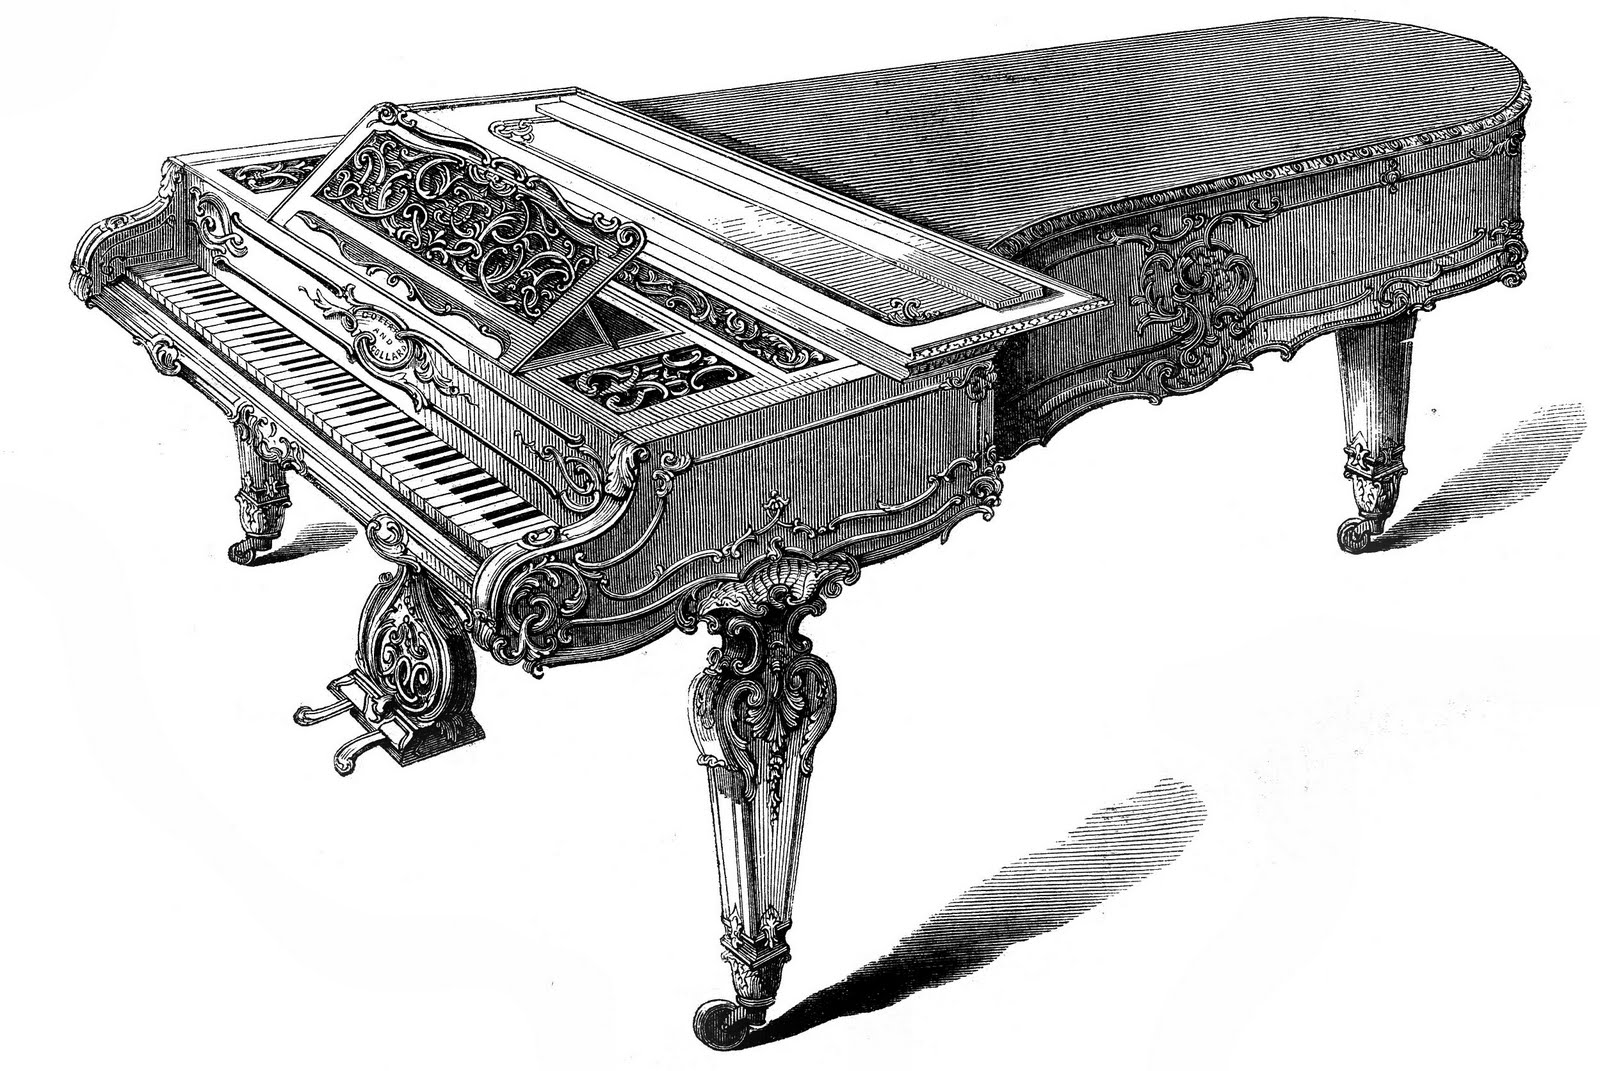 drawings of pianos piano drawing stock illustration download image now istock drawings pianos of